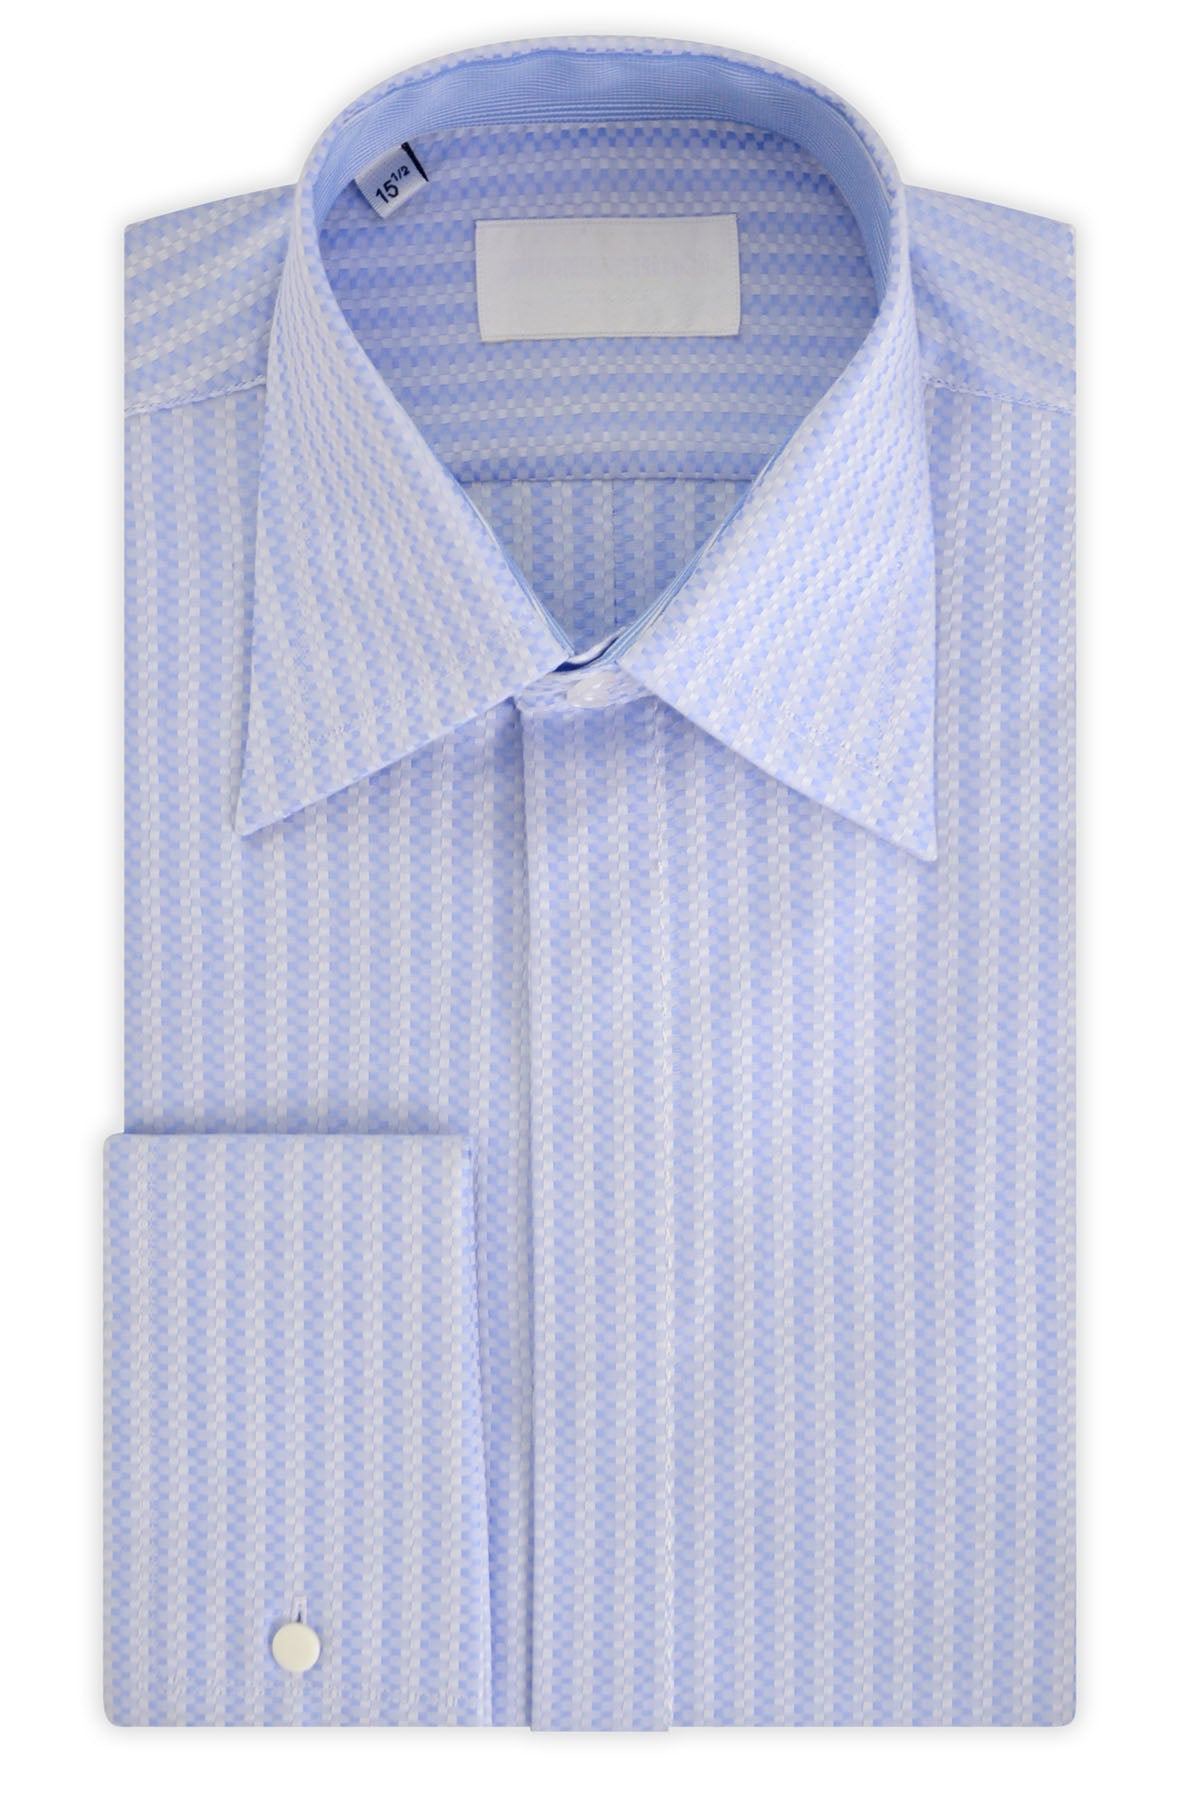 Oxford Blue over White Geometric Forward Point Collar Shirt with Matching Tie